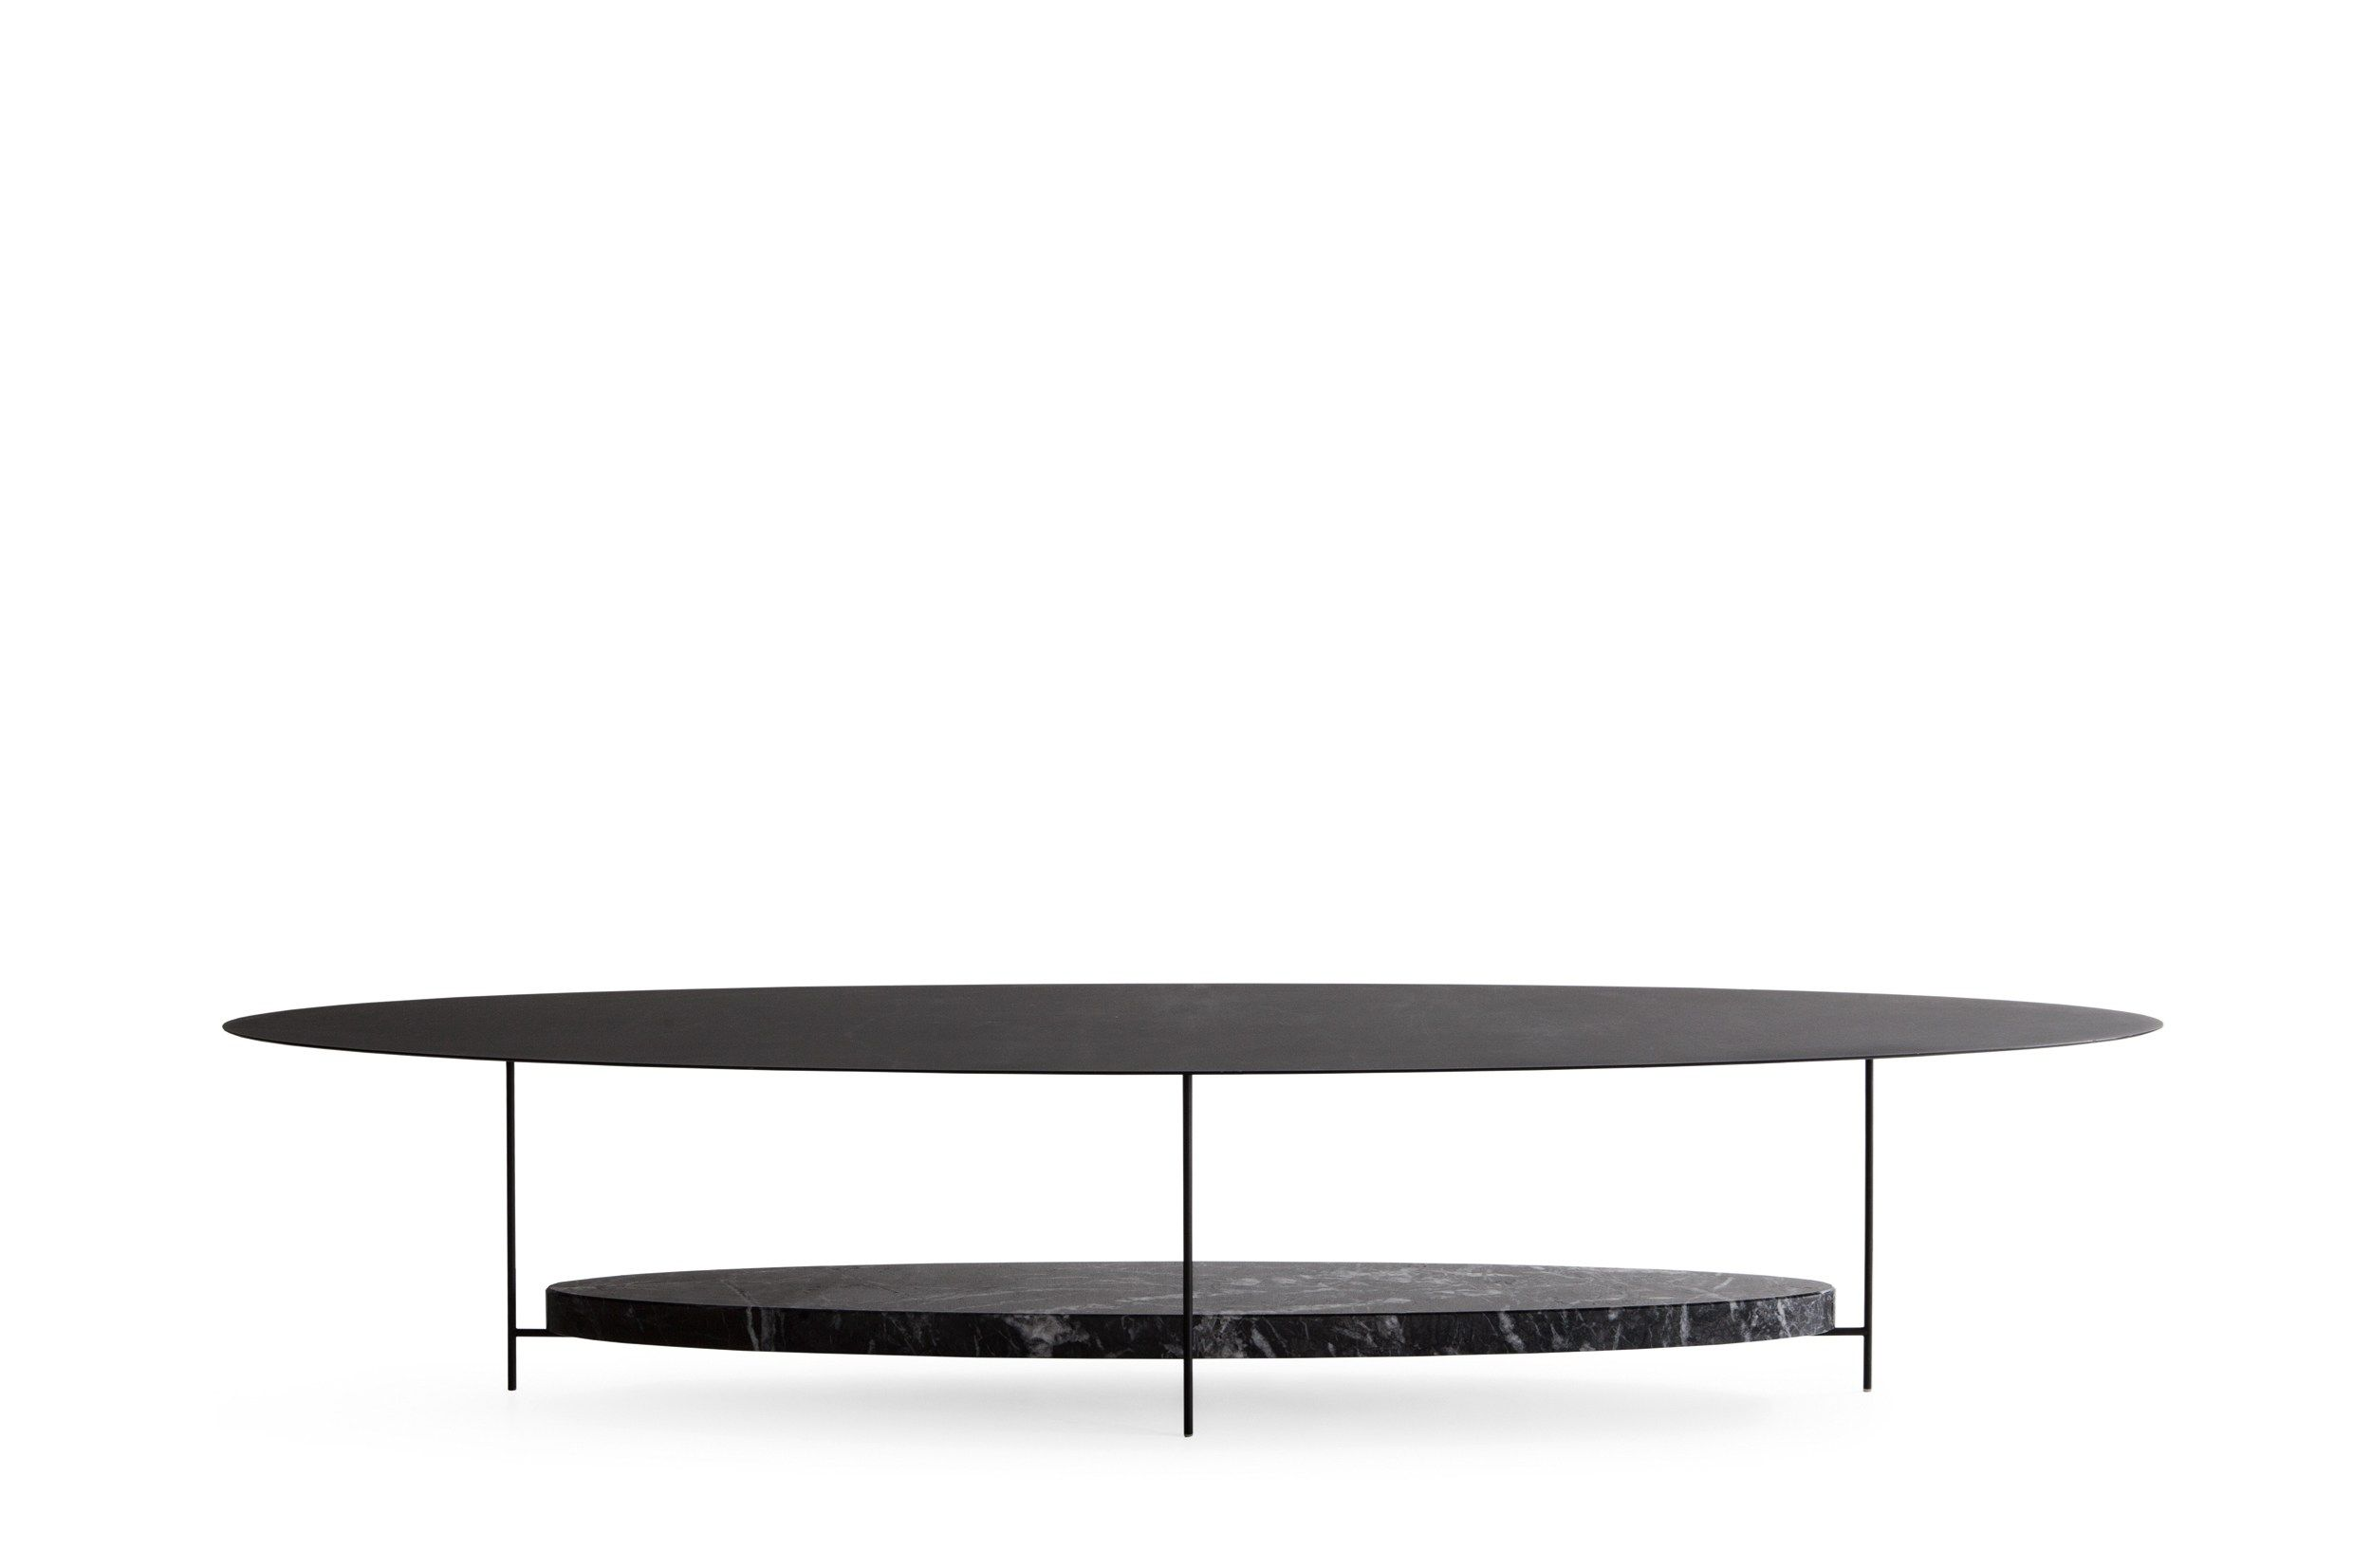 Table Basse Marbre Design Panna Cotta Table Basse Ovale By Molteni C Design Ron Gilad